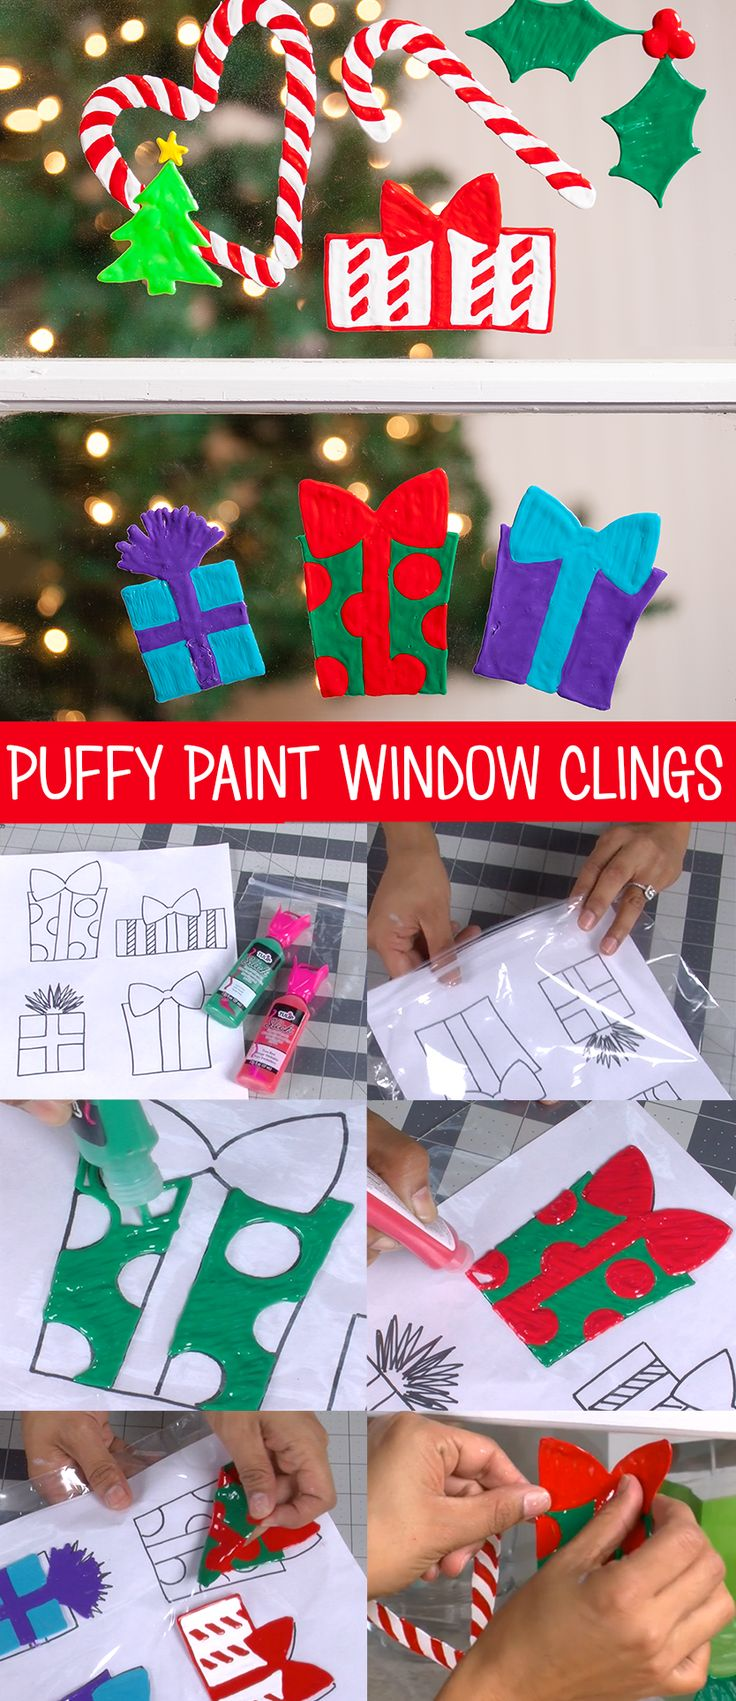 Make your own puffy paint window clings using Tulip Dimensional Paint with this adorable pattern design available from iLoveToCreate!